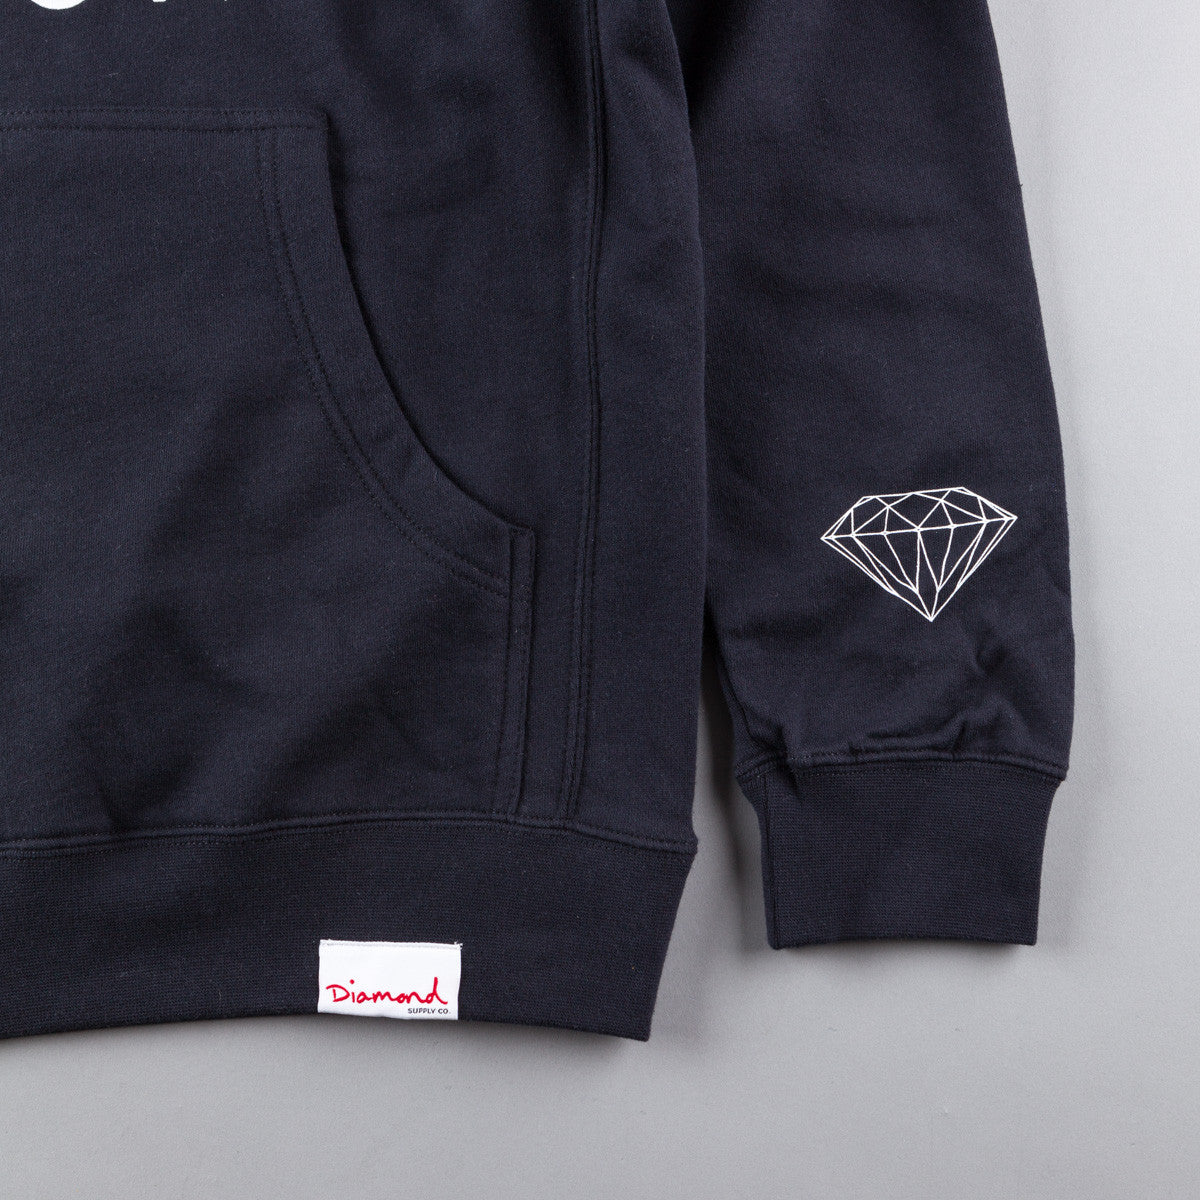 Diamond Skate Westwind Hooded Sweatshirt - Navy